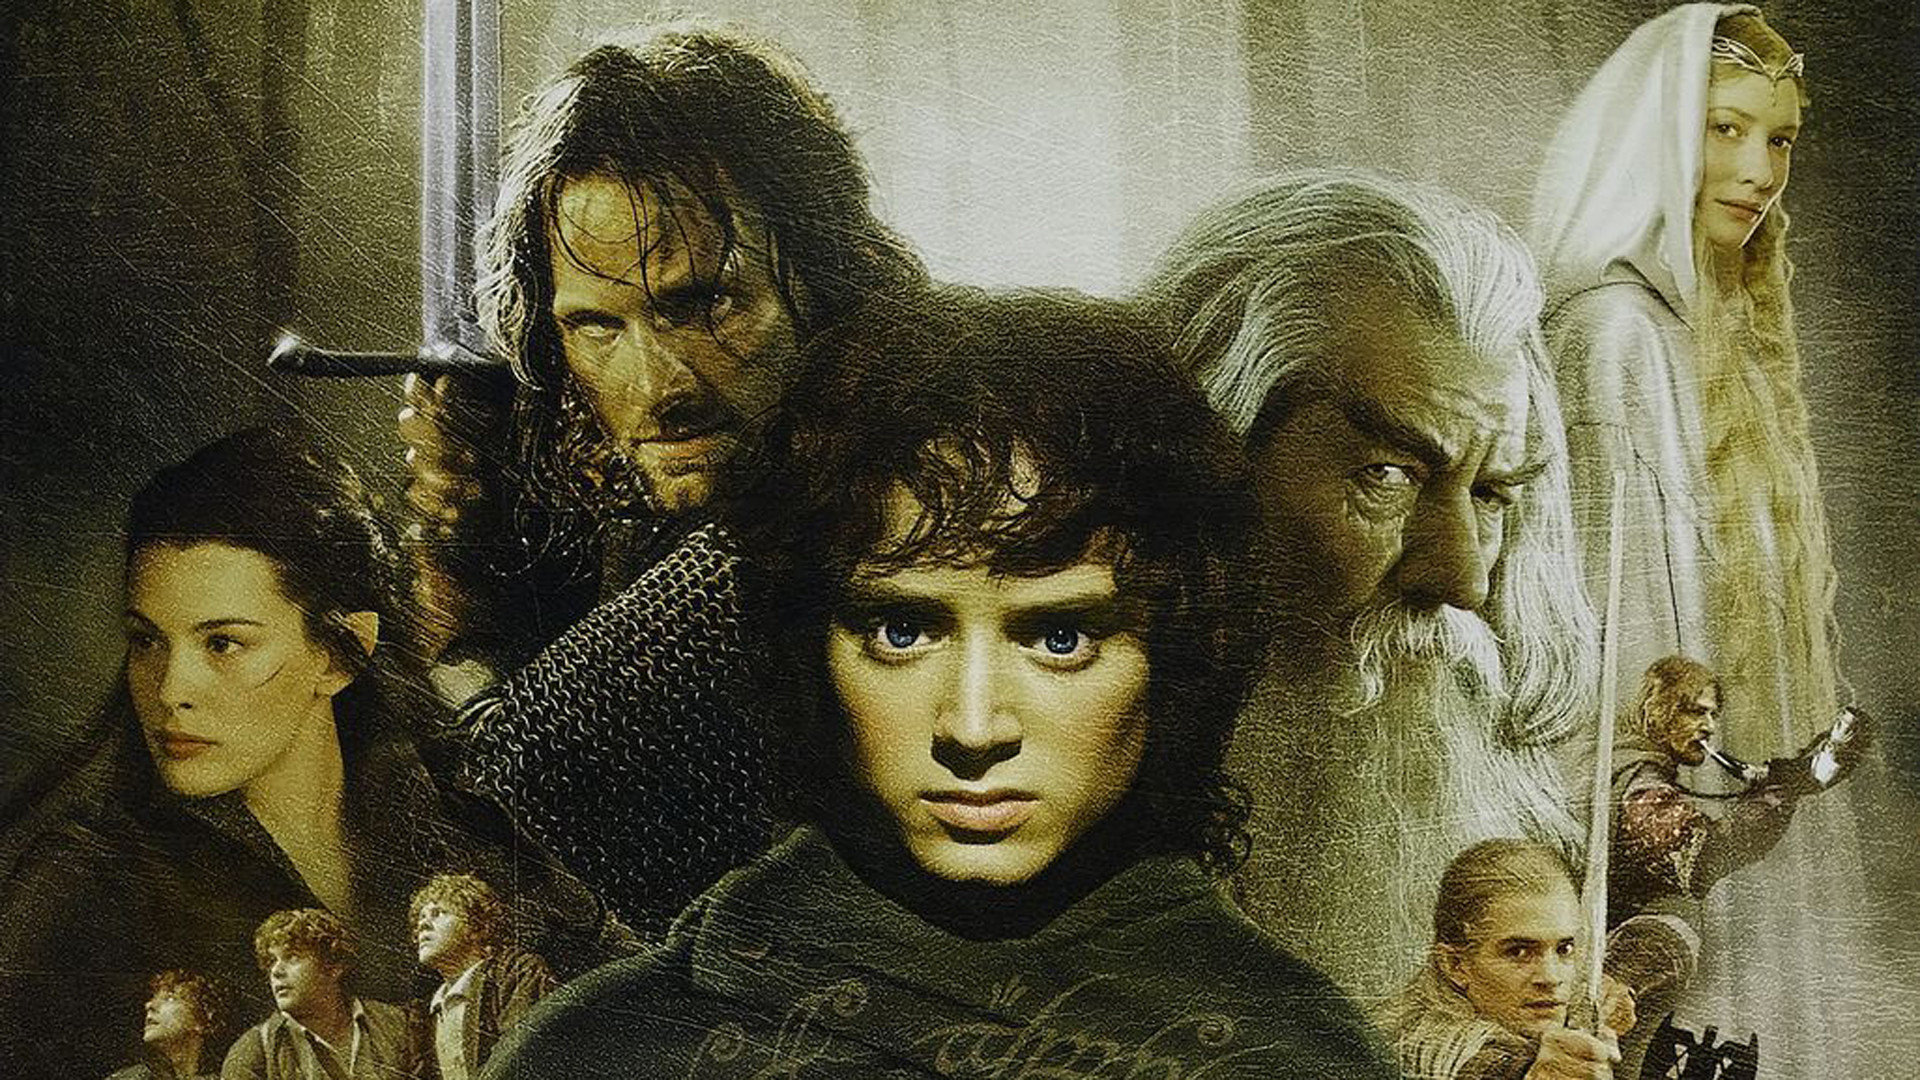 good versus evil in the movie the lord of the rings the fellowship of the ring by jrr tolkien The lord of the rings trilogy, spanned from 2001-2003, is a series of dramatic mythical movies based on the fantasy novels the lord of the rings: the fellowship of the ring, the lord of the rings: the two towers and the lord of the rings: the return of the king.